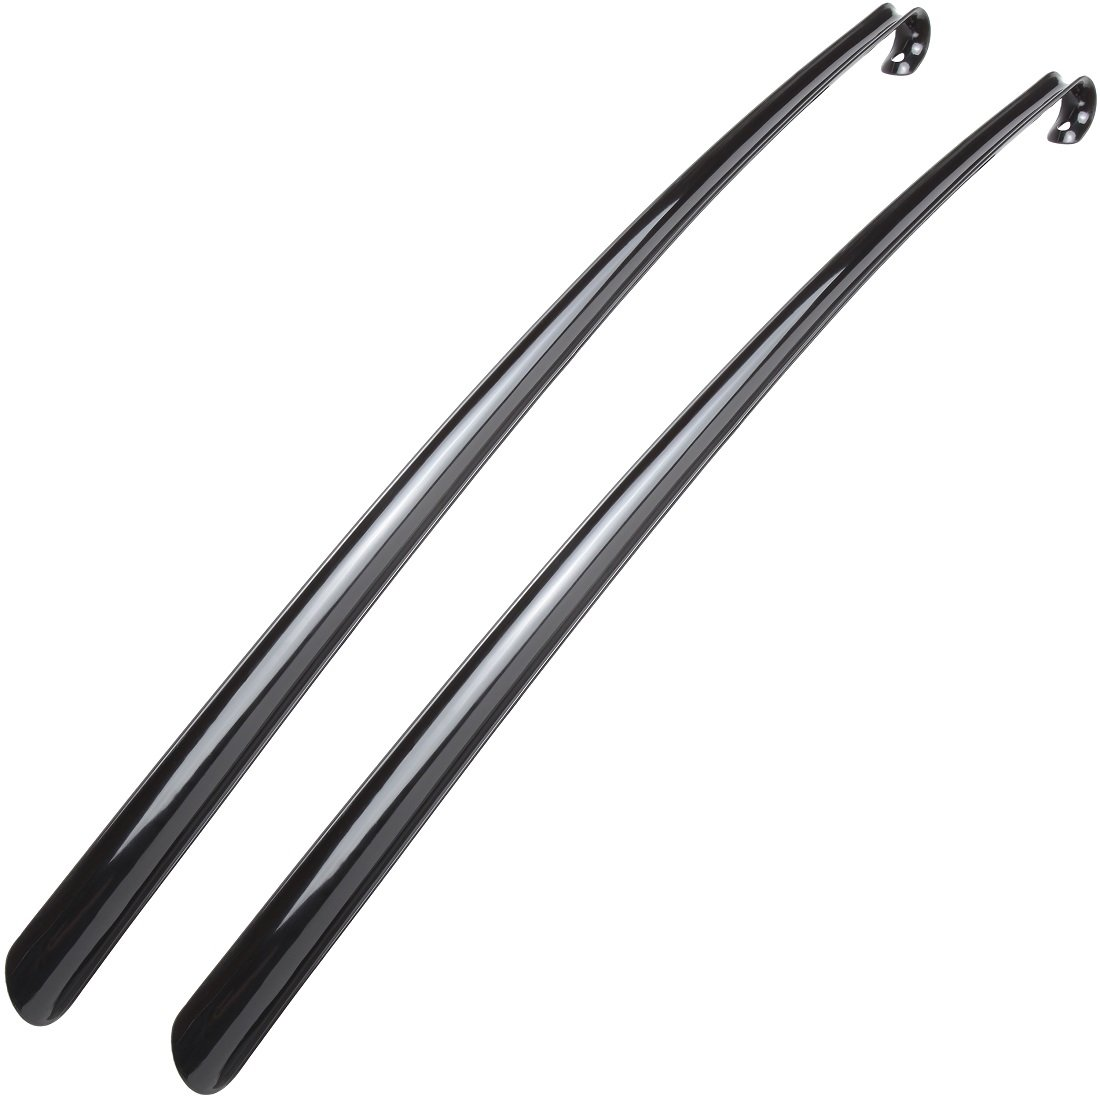 Home-X Durable Easy-Grip Long Handled Shoe Horns - Set of 2. 30 Inch Each.